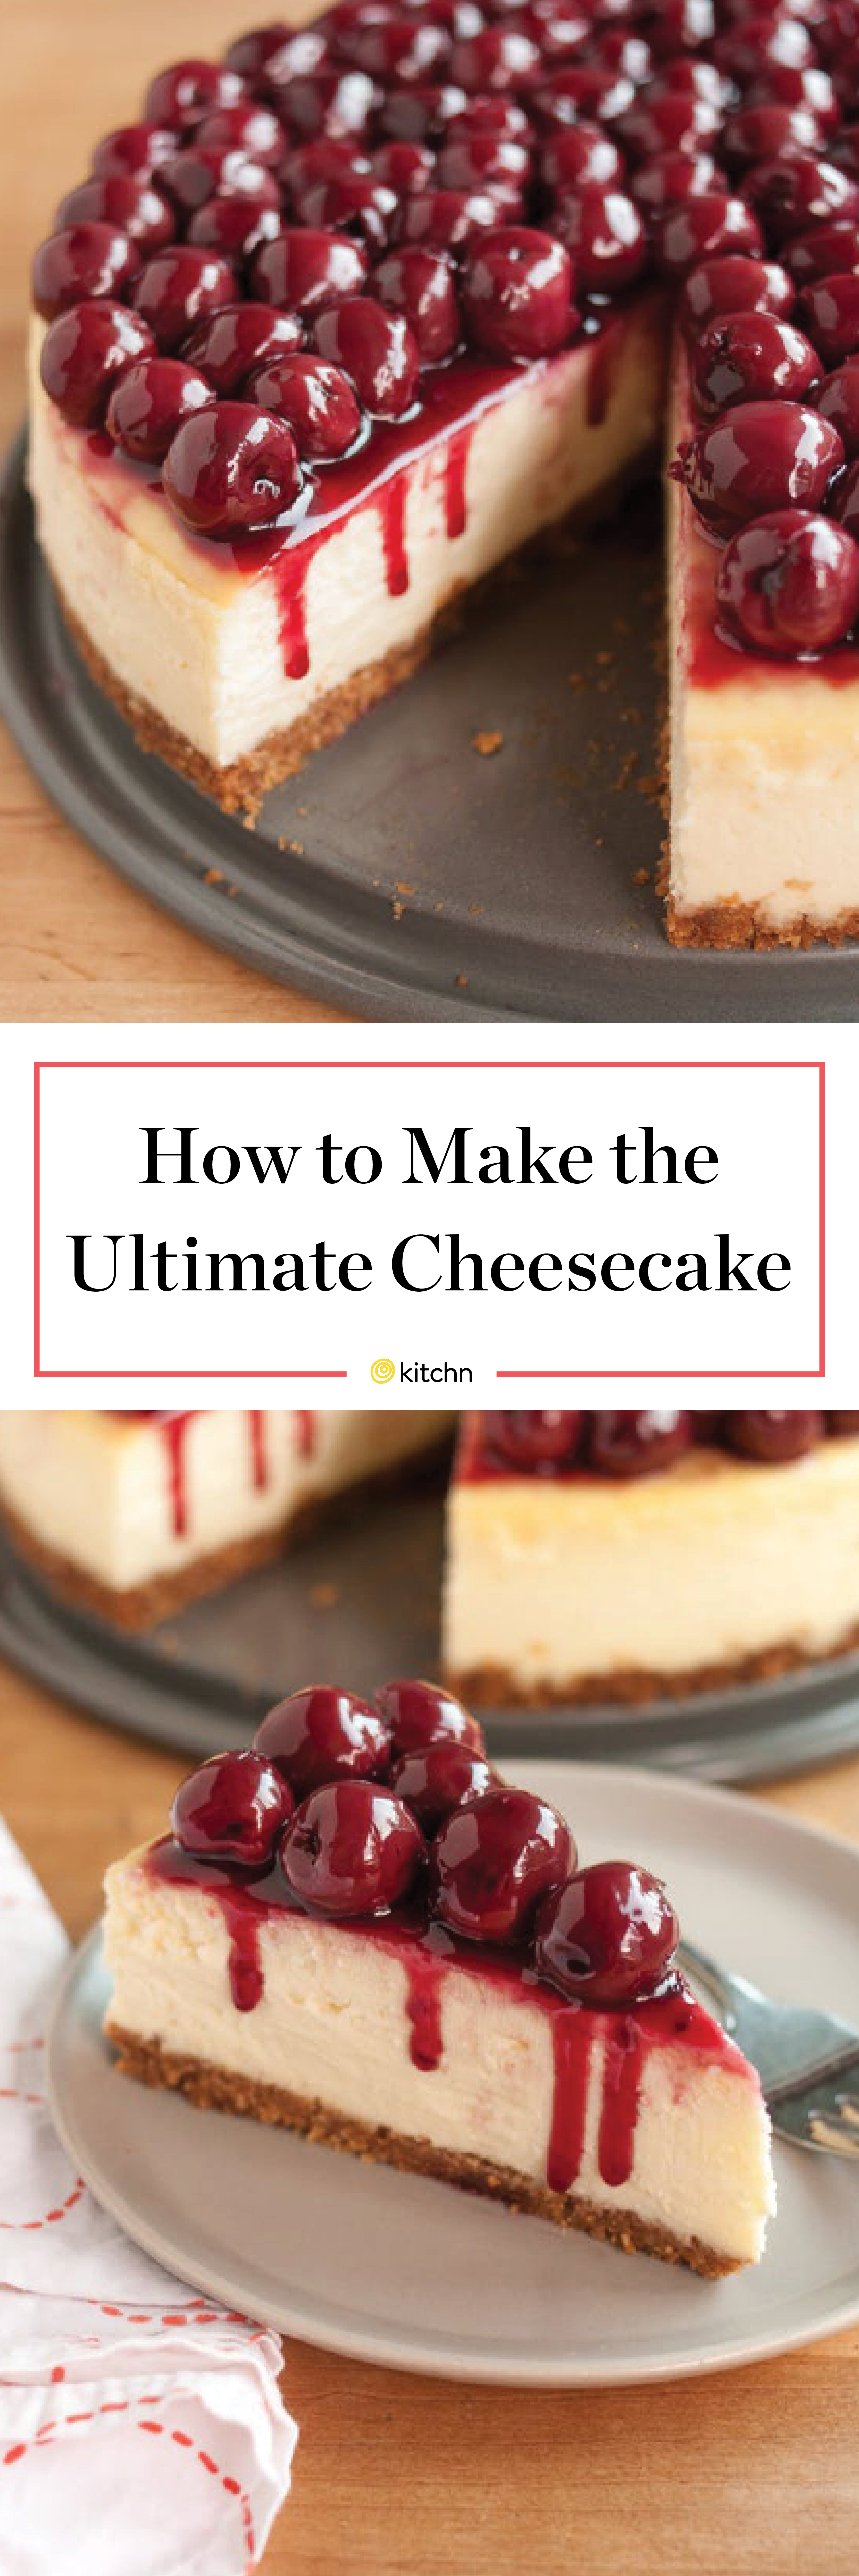 How To Make Perfect Cheesecake Step By Step Recipe Kitchn